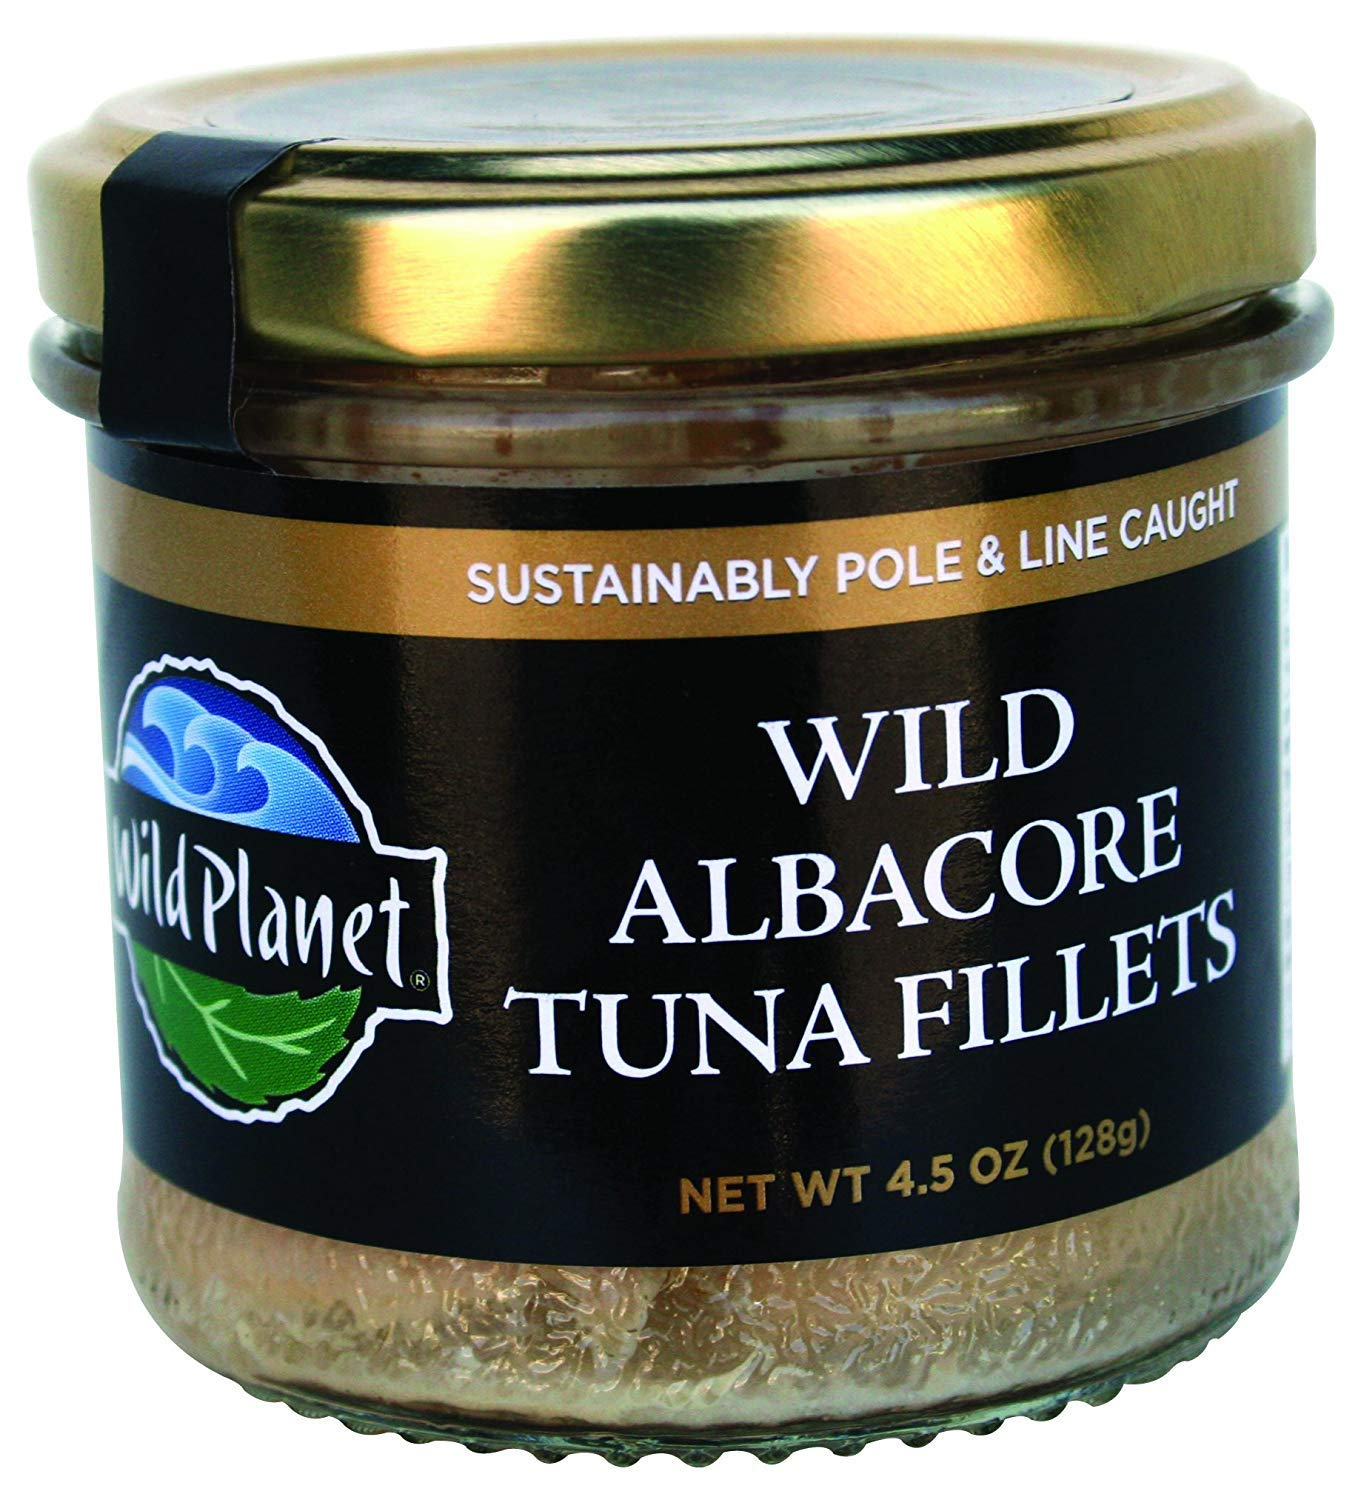 Wild Planet Albacore Wild Tuna Fillets, Keto and Paleo, 3rd Party Mercury Tested, 4.5 Ounce (Pack of 12)